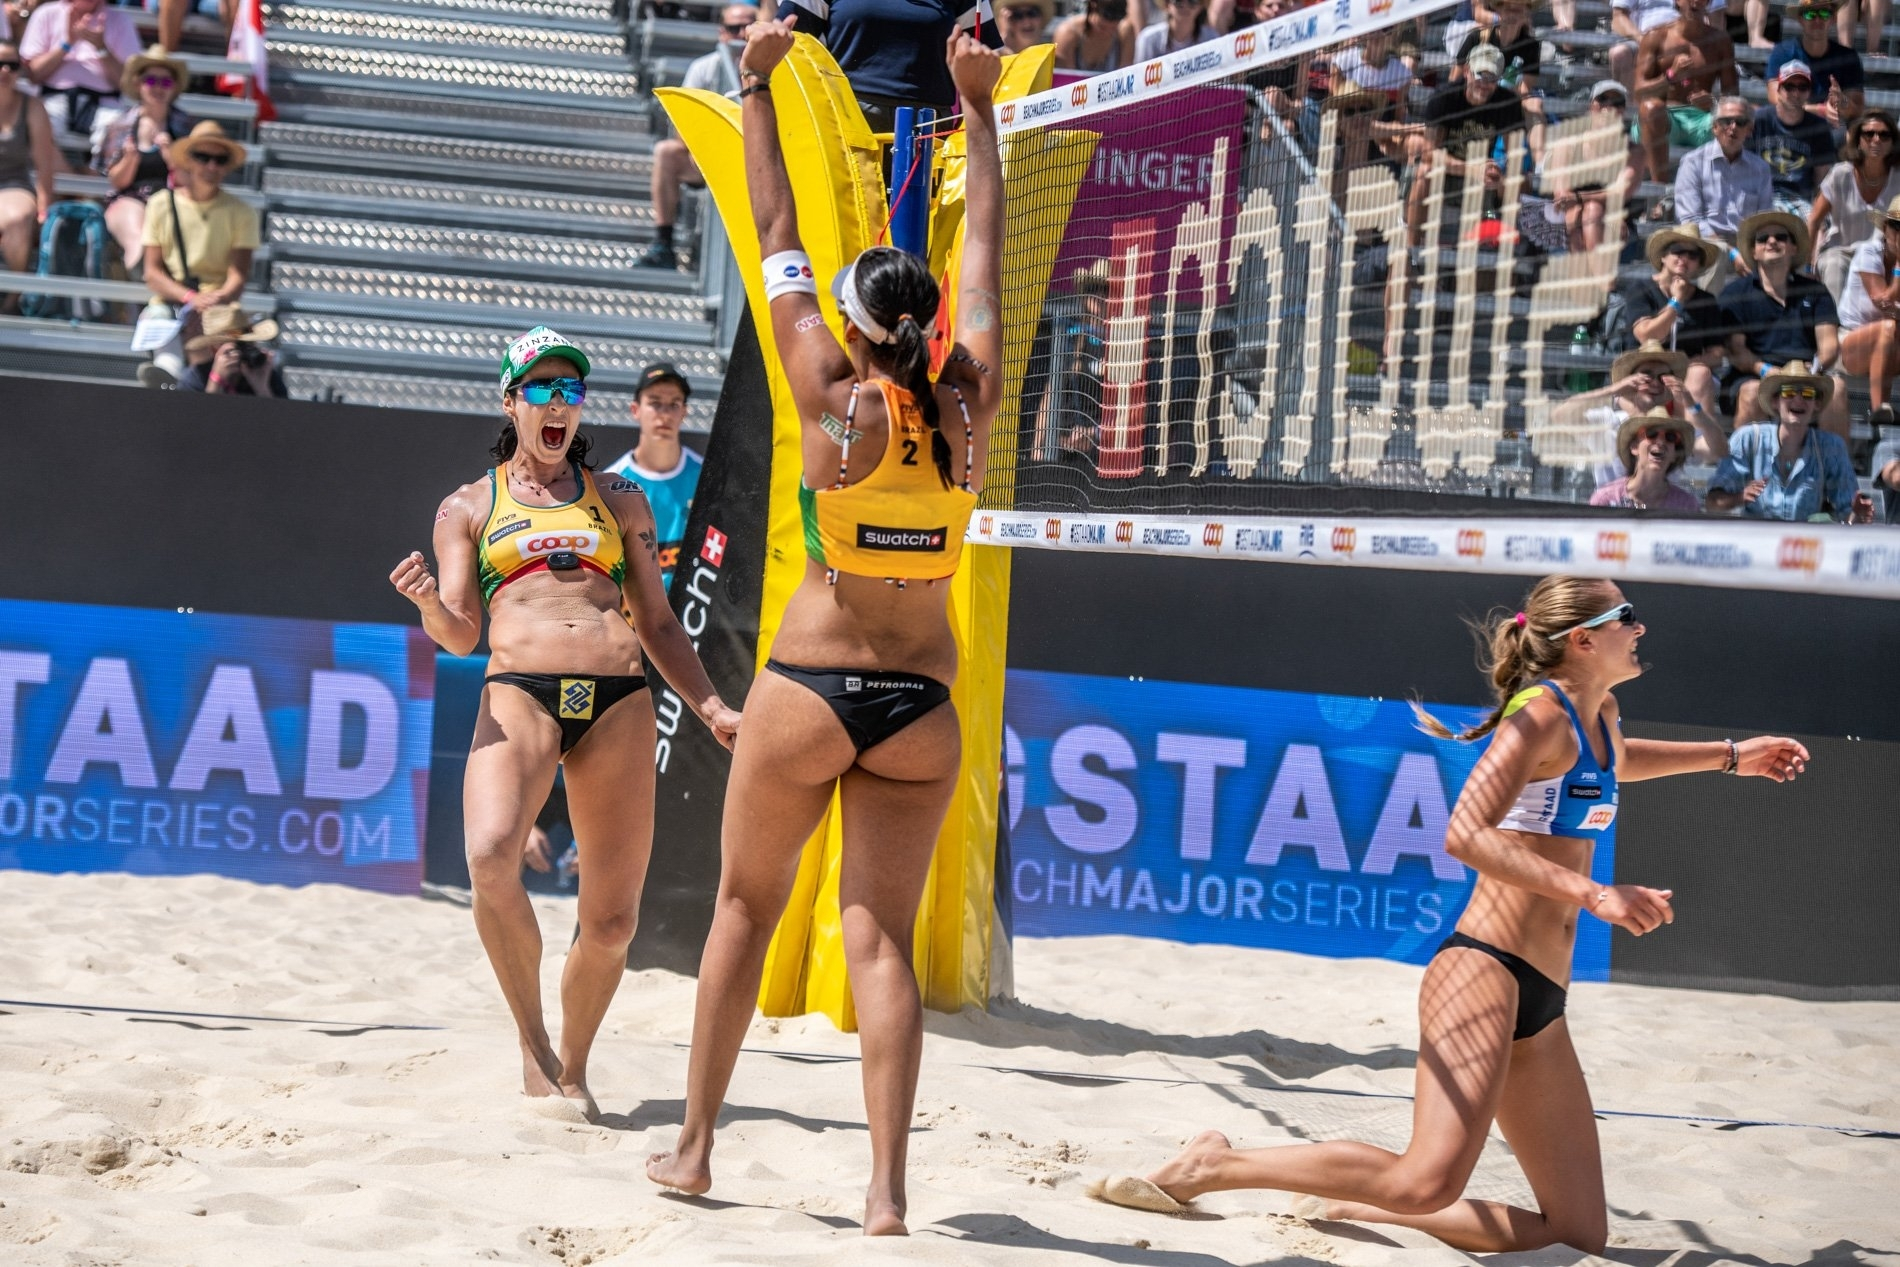 Agatha and Duda celebrate on what's been a mixed day for Brazilian beach volleyball in Gstaad